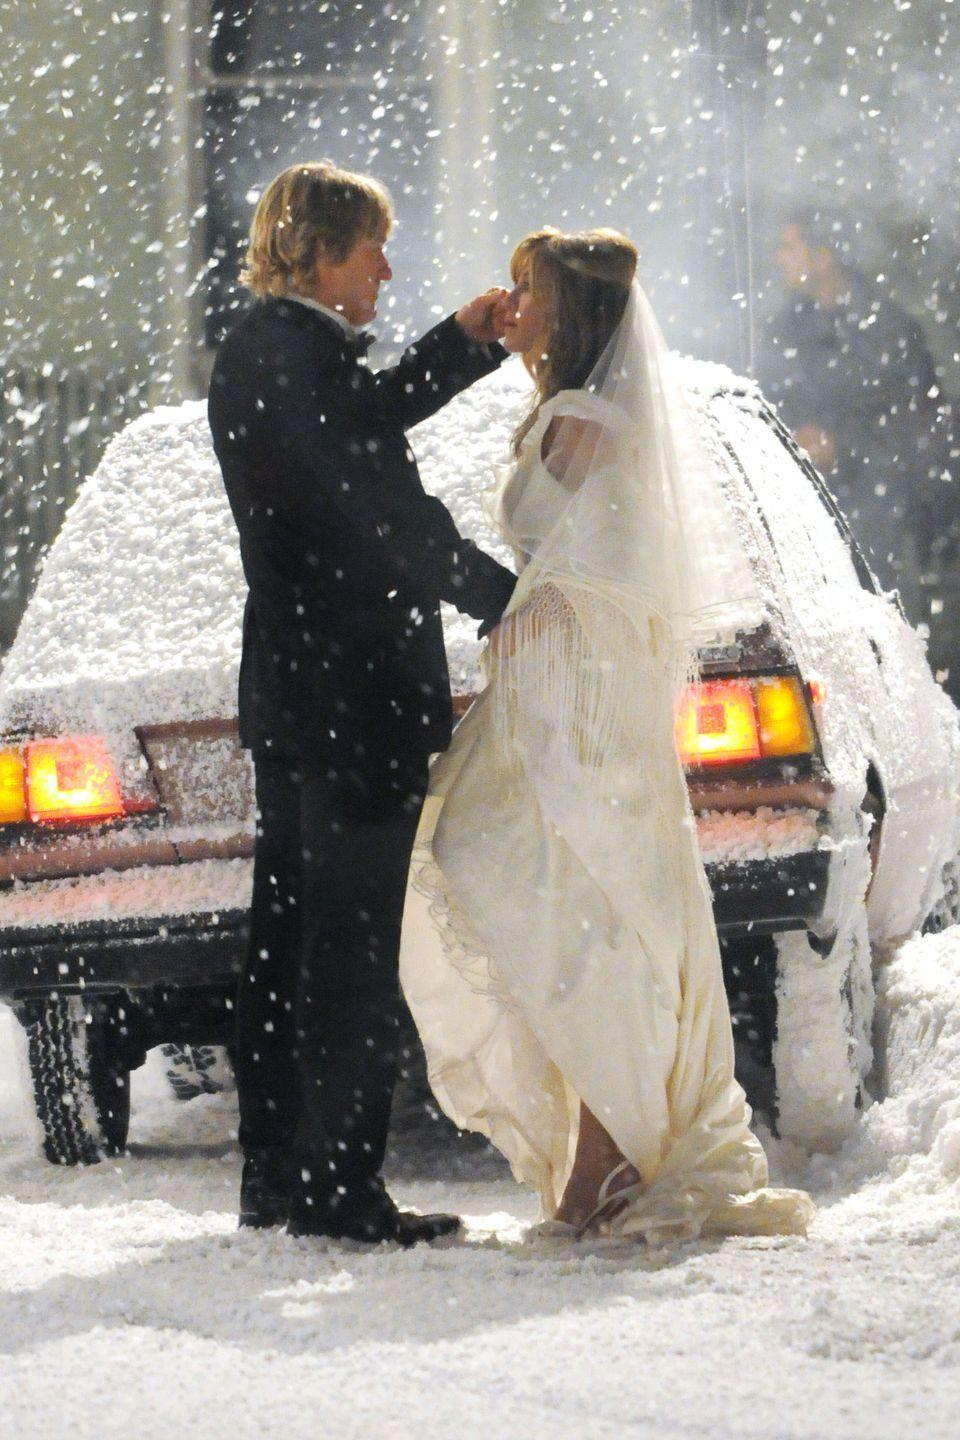 <p>Jenny's (Jennifer Aniston) winter wedding dress looked magical in a snowstorm, even though we imagine she was quite cold. The <em>Marley and Me </em>wedding took place at the very beginning of the movie, pre-Marley.<br></p>